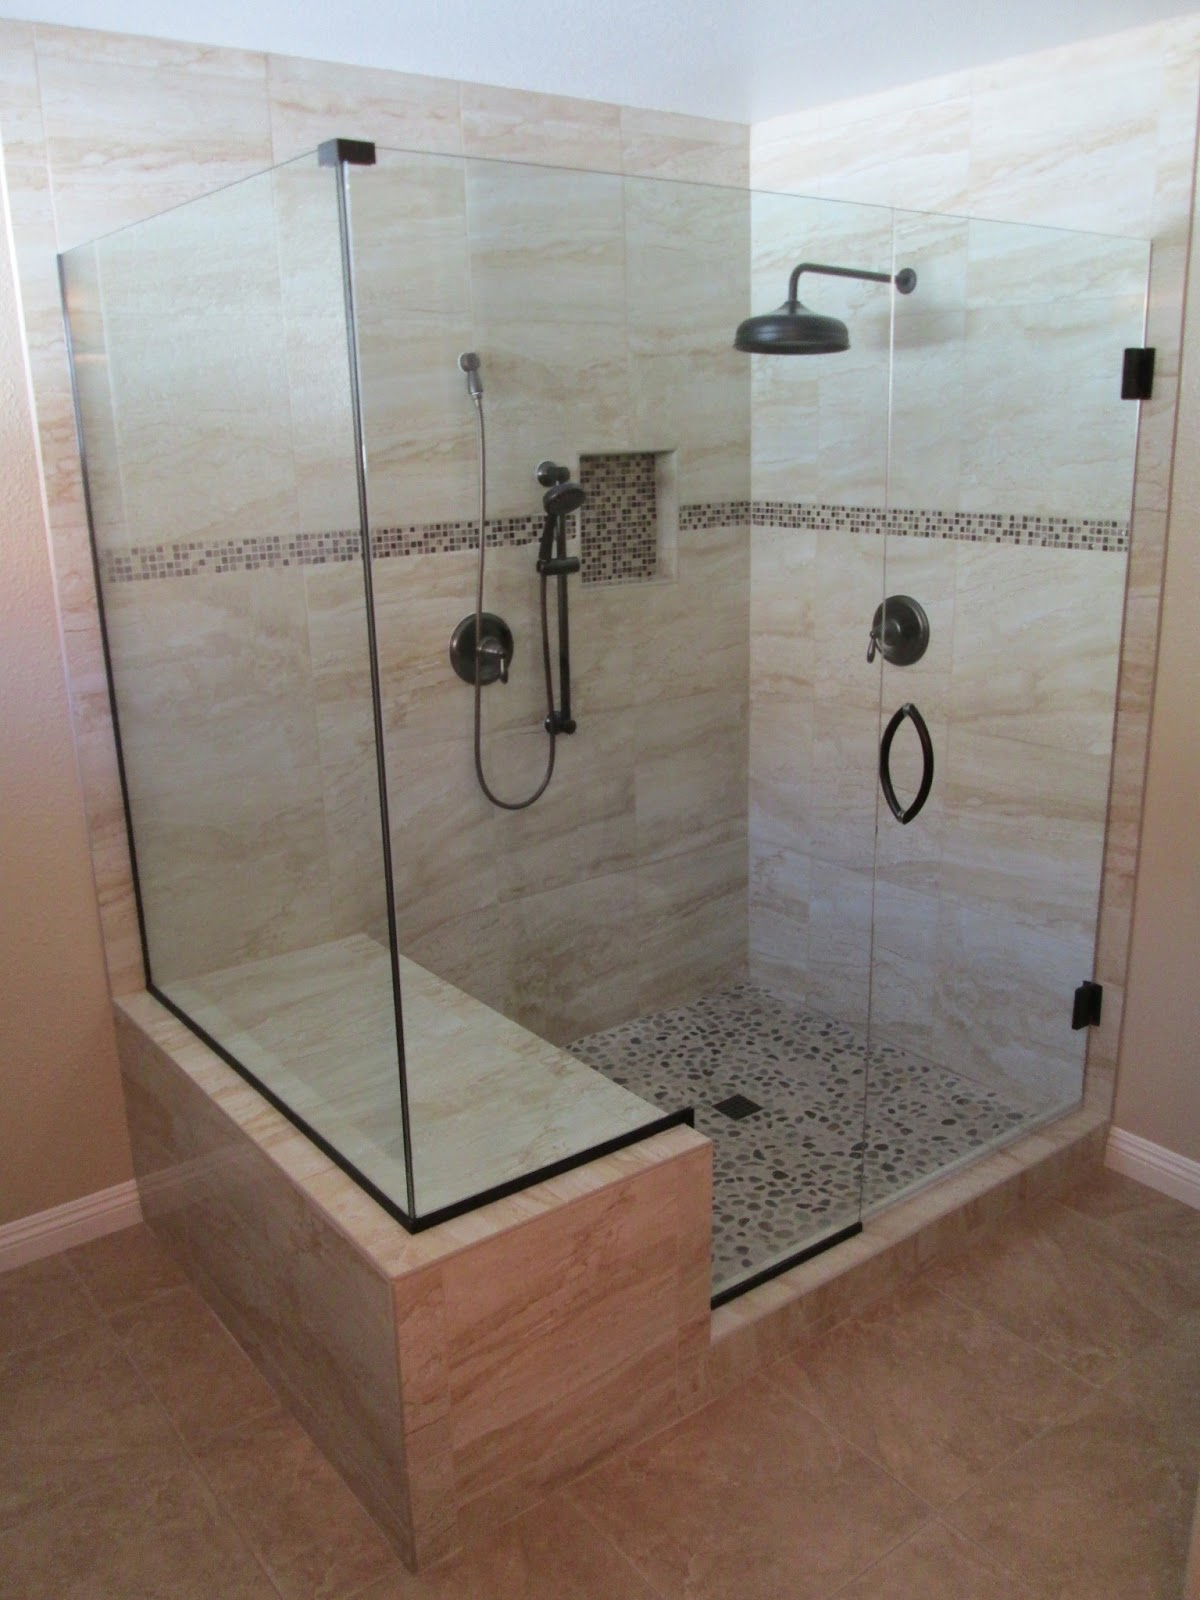 Bathroom Remodel San Diego san diego roofer and general contractor: on the jobsite: master